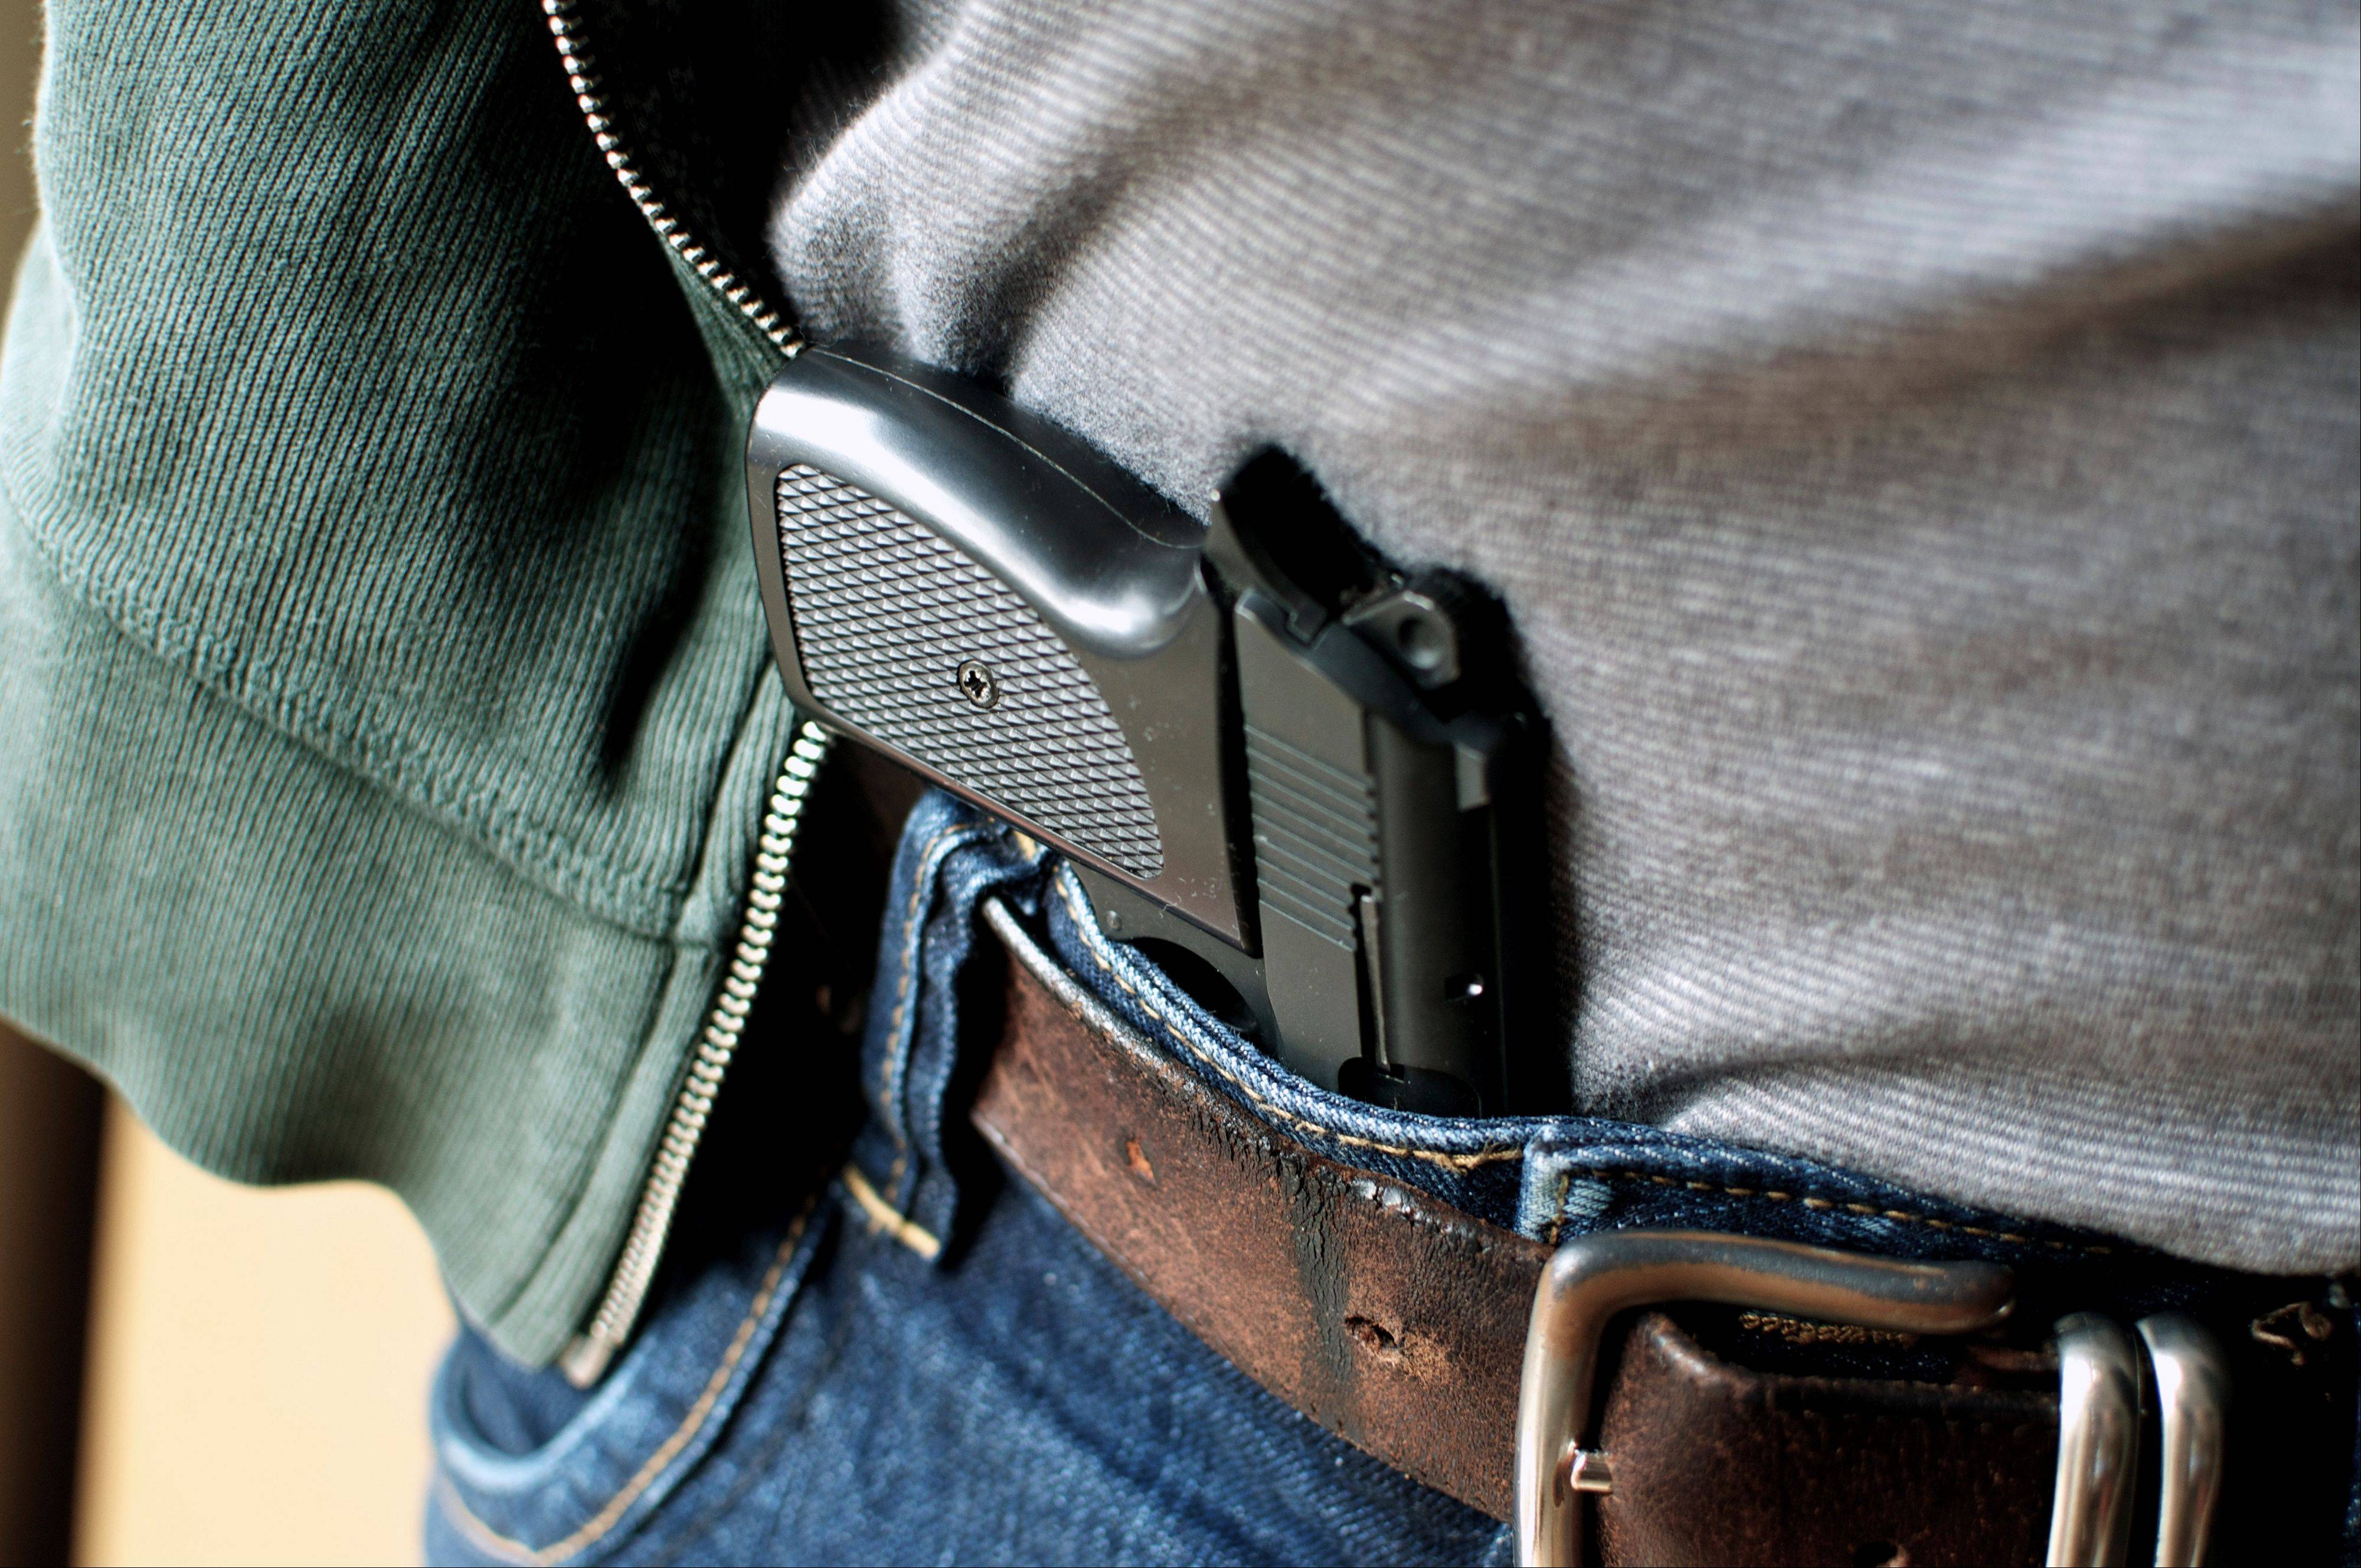 Individual suburbs wouldn�t get to set their own rules for carrying a concealed firearm under the plan lawmakers have sent Gov. Pat Quinn. And suburban gun owners wouldn�t be allowed to carry loaded guns on public transit or in schools, parks and other places.